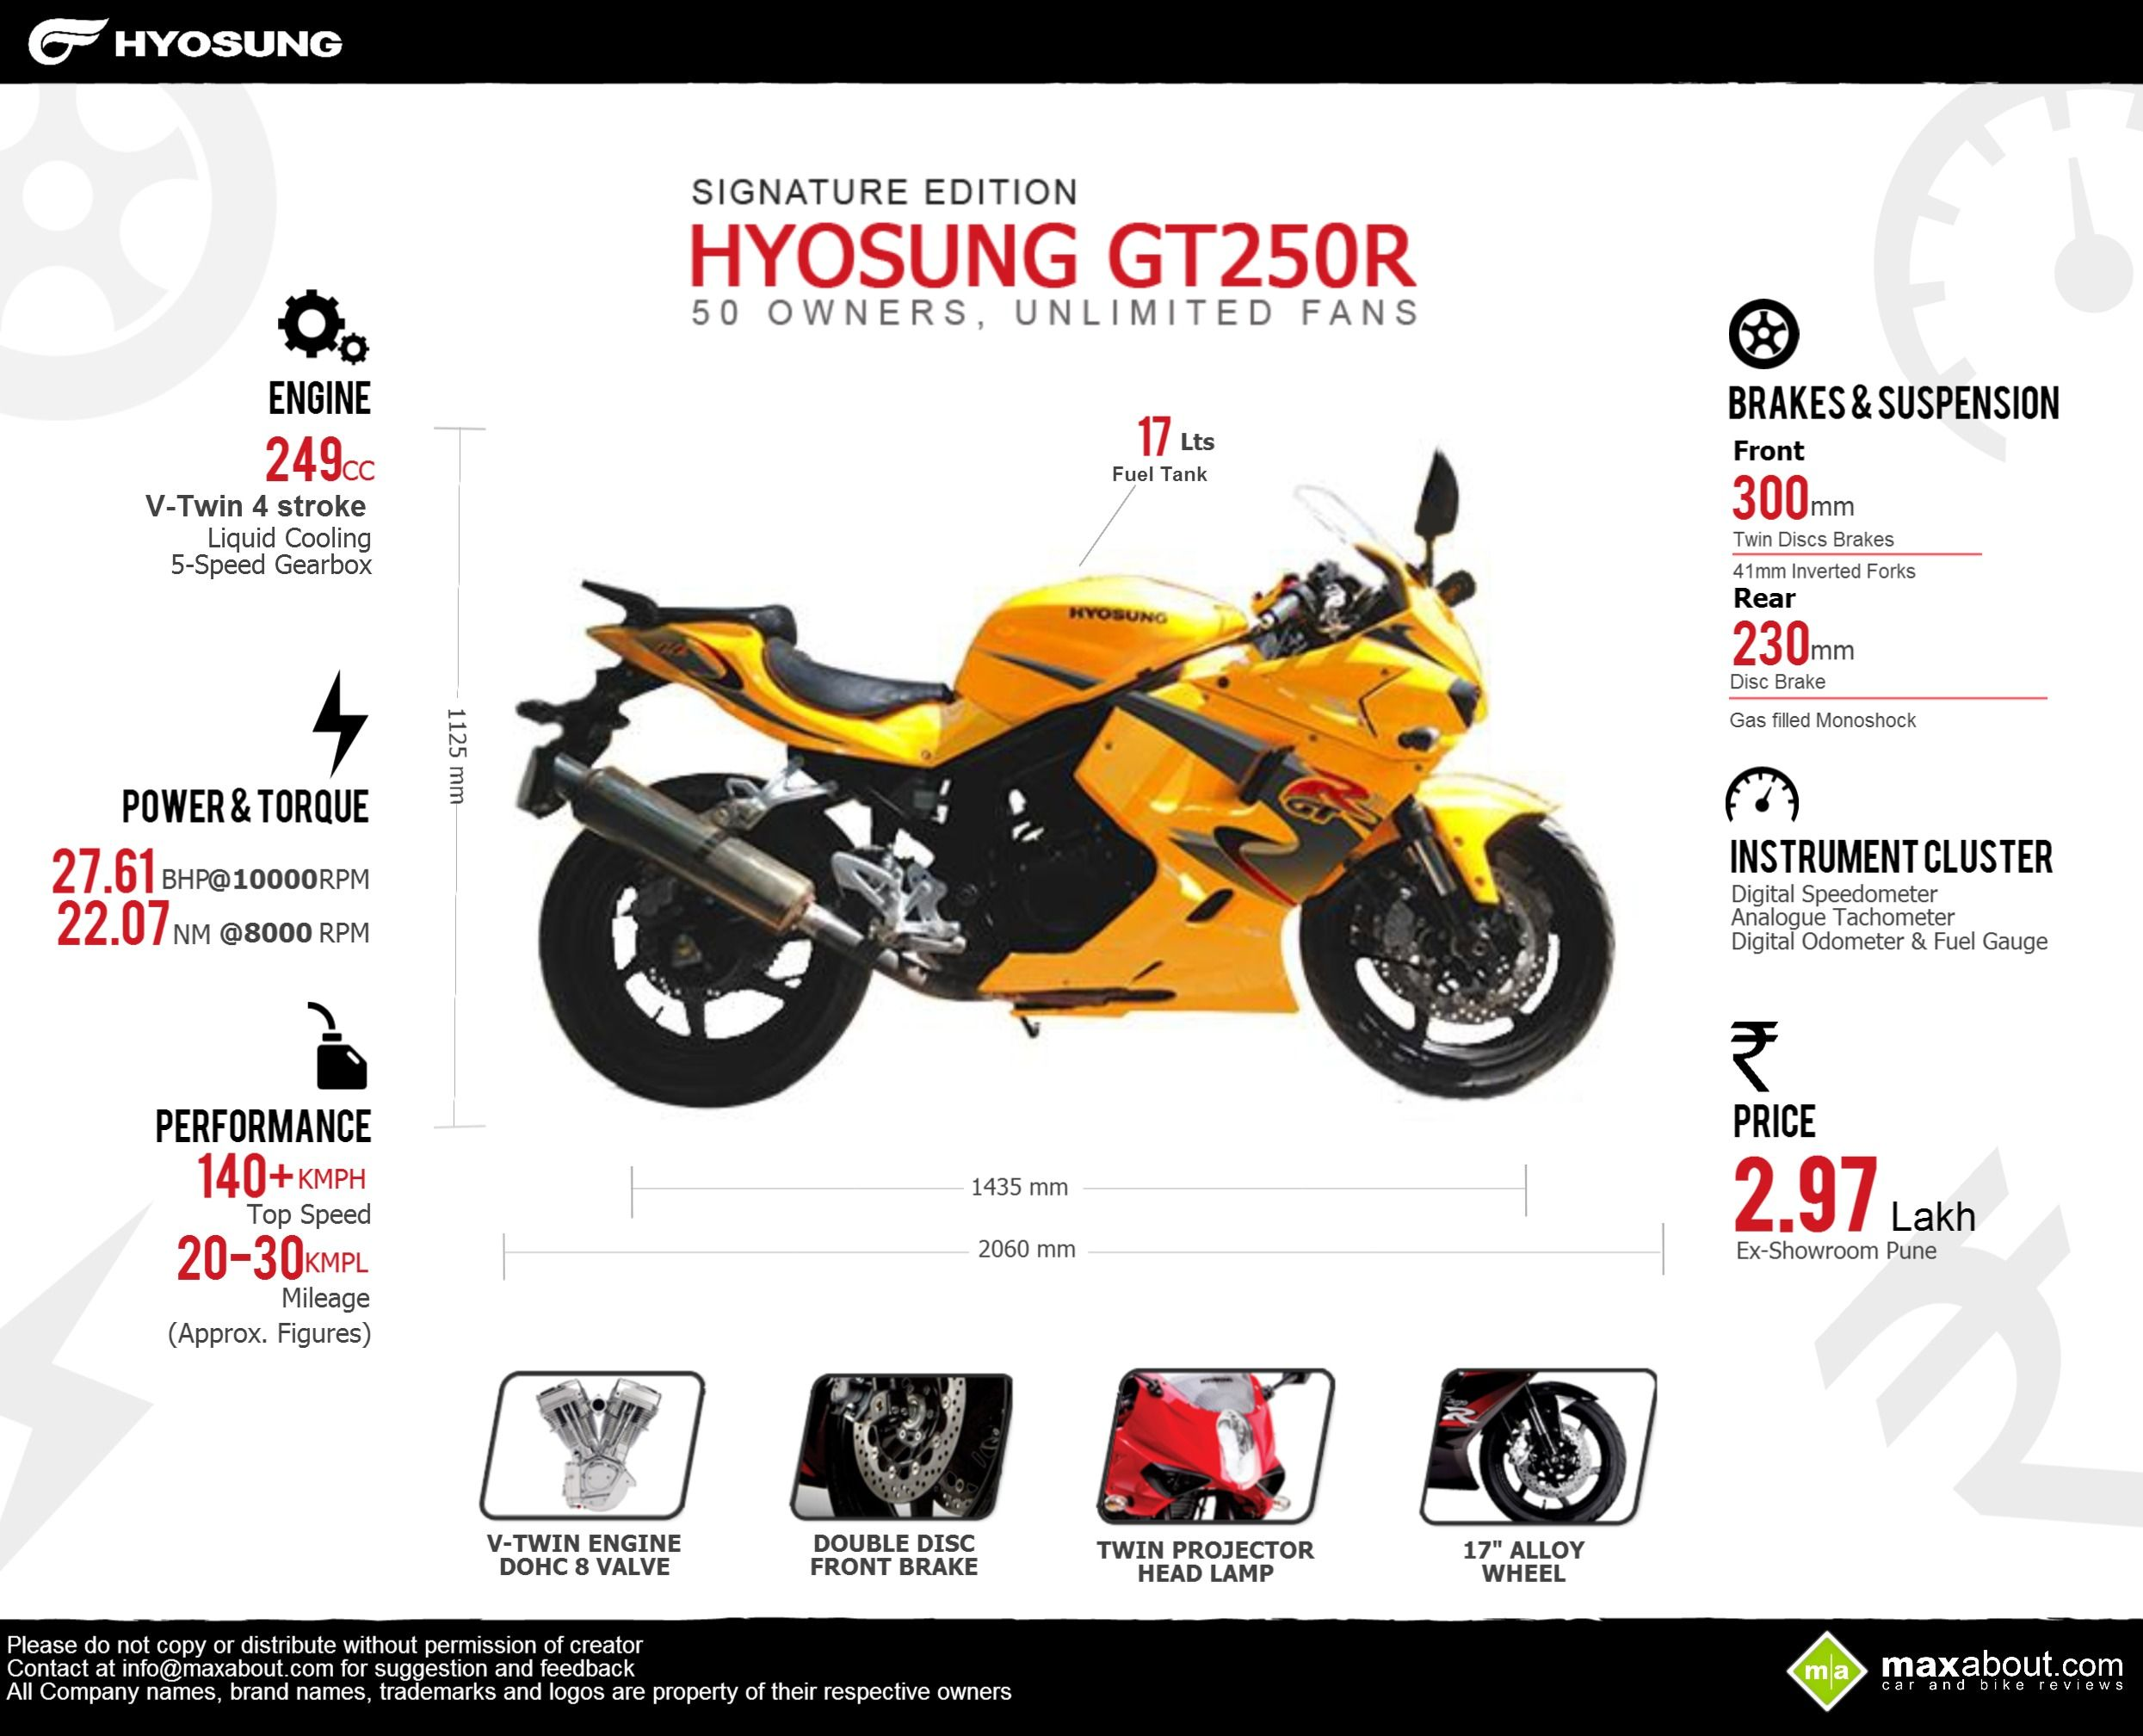 Hyosung Gt250r Signature Limited Edition Launched Maxabout